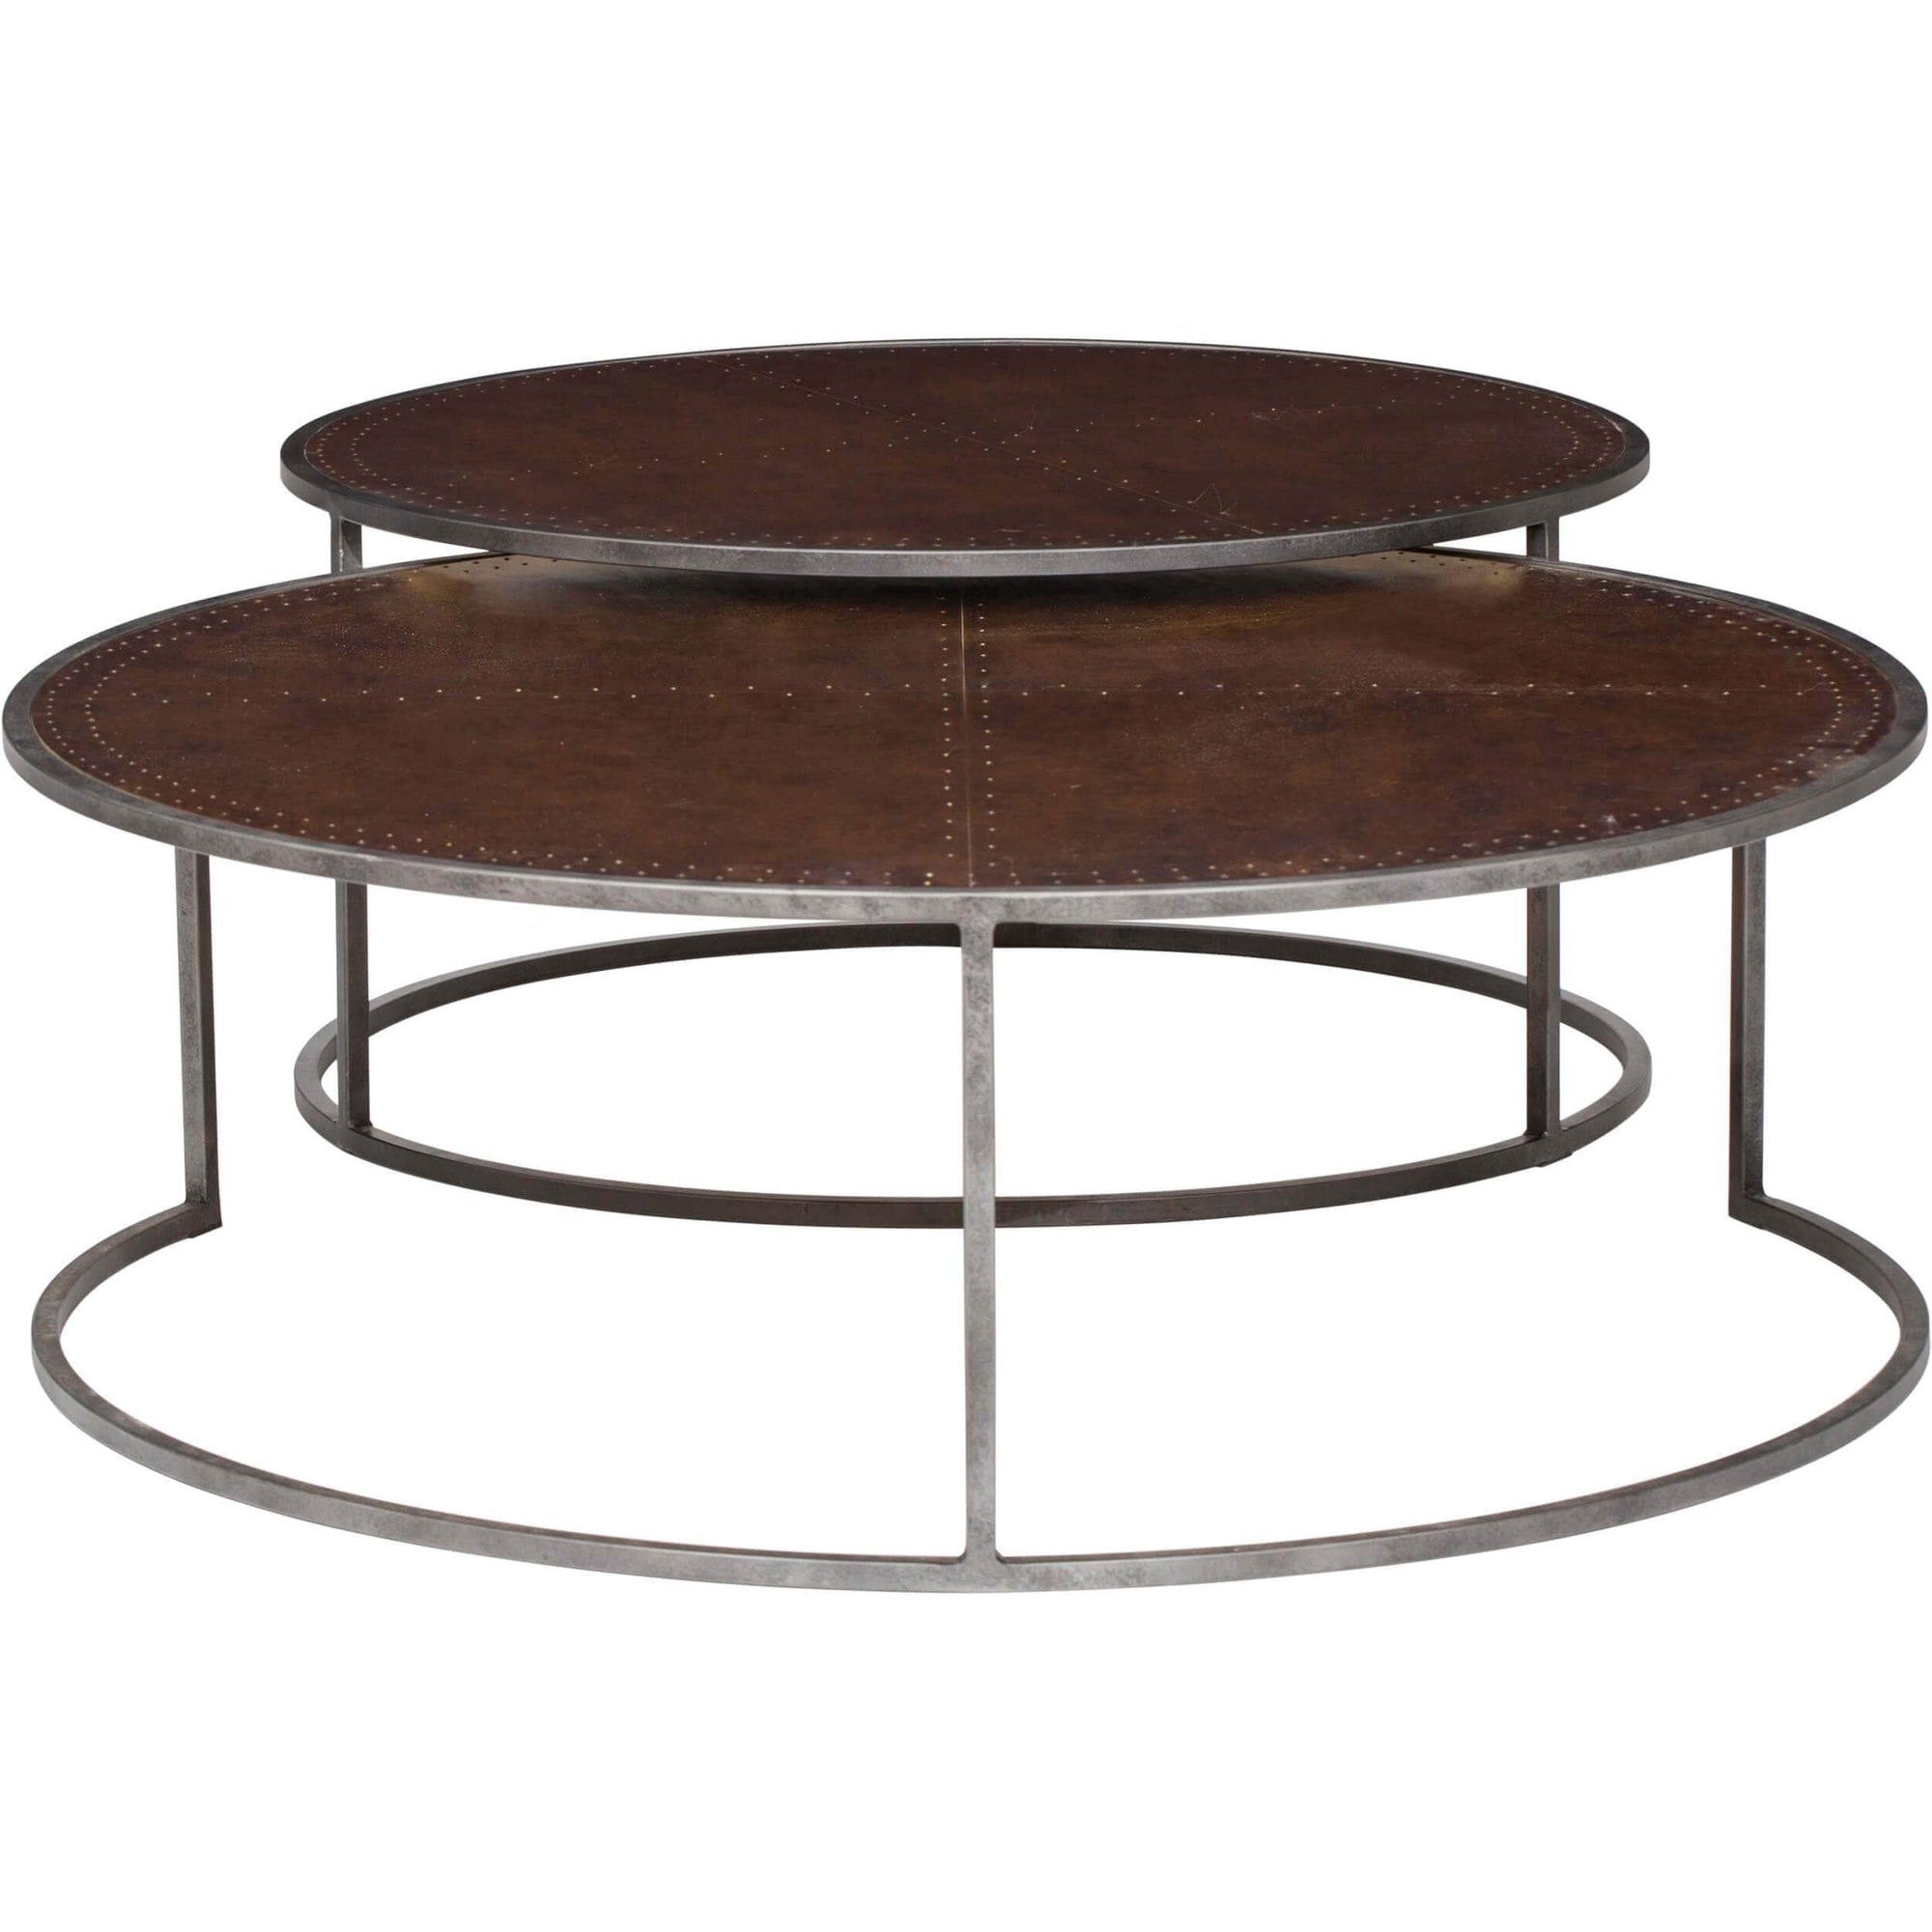 Catalina nesting coffee table antique copper high - How high should a coffee table be ...